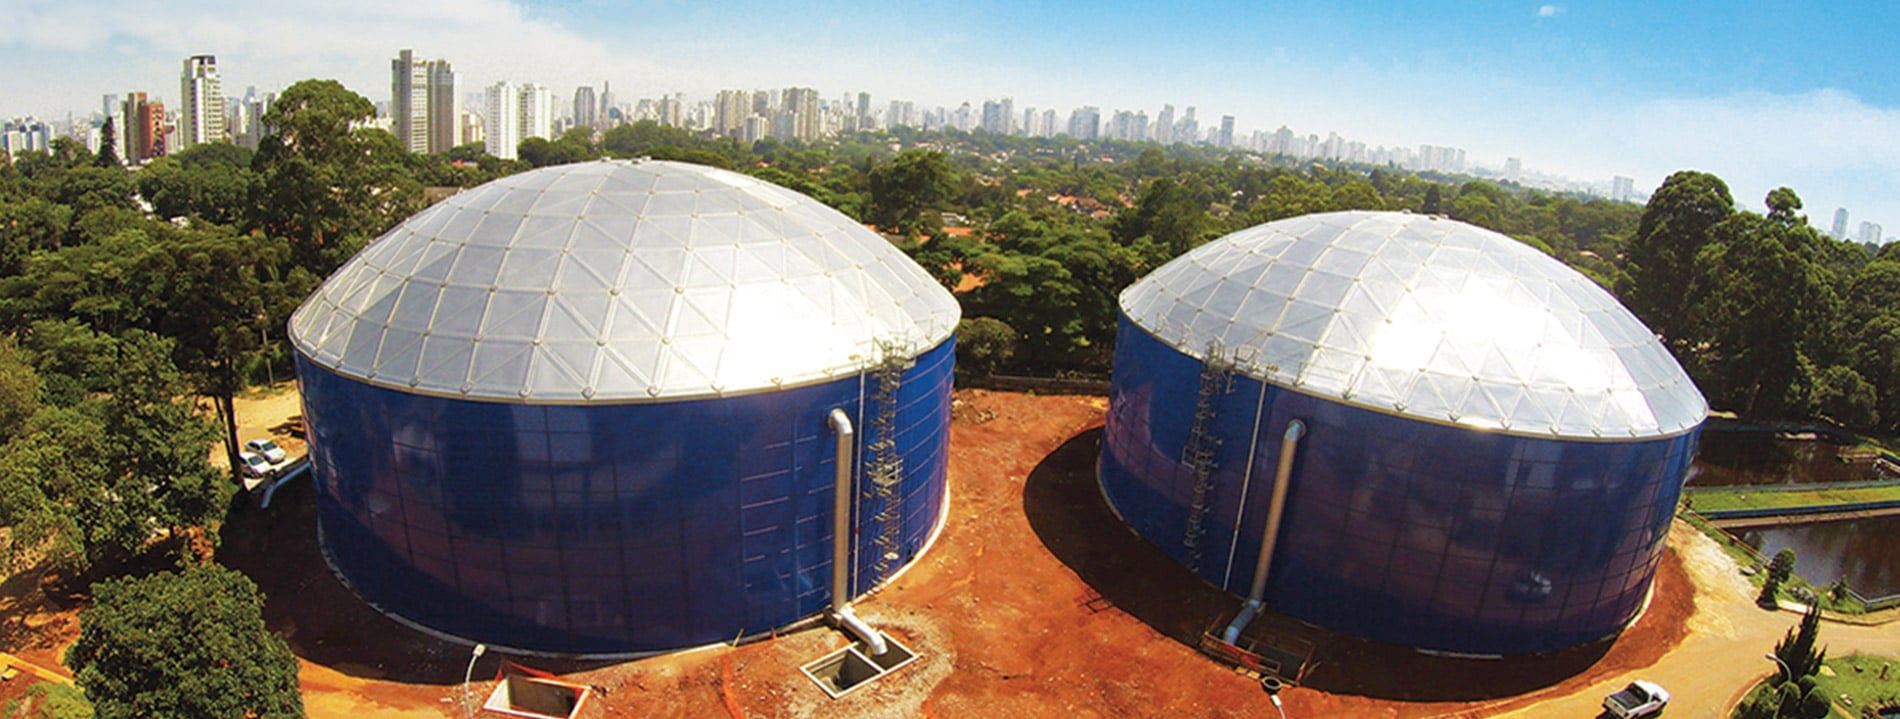 African tanks Aluminum Domes blue